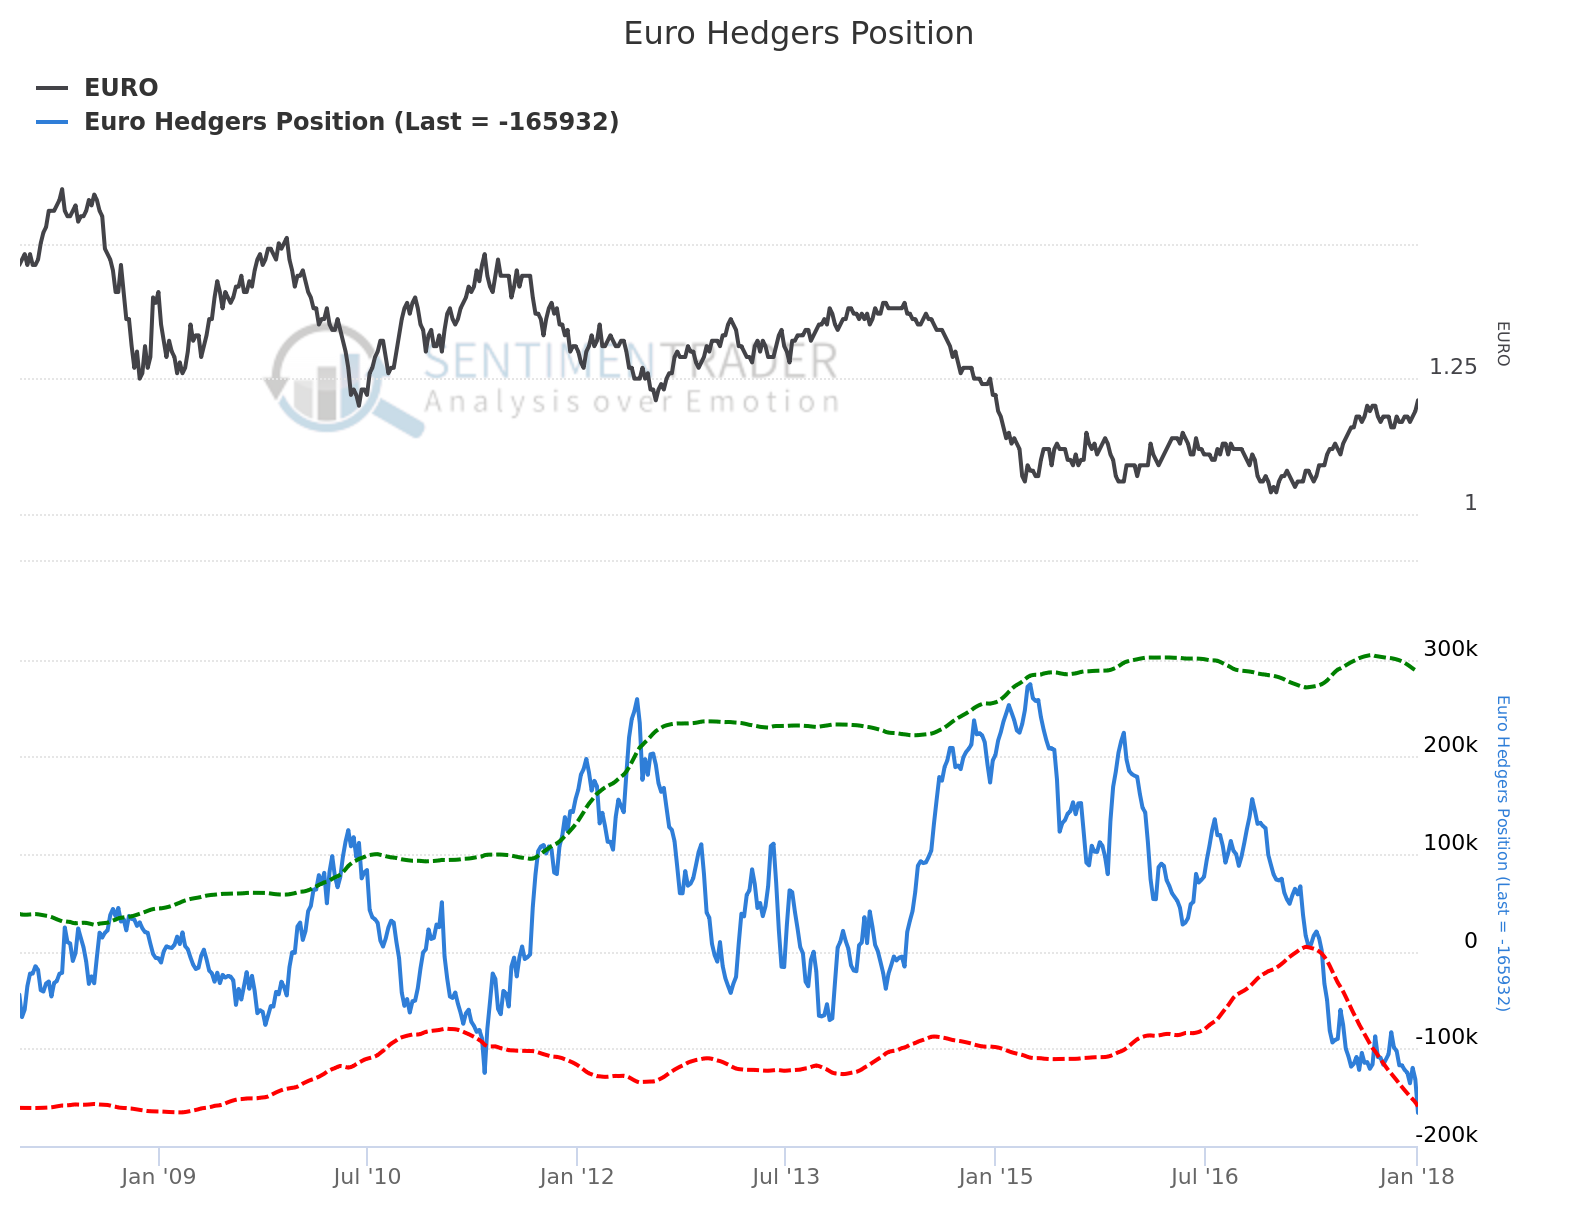 Euro Hedgers Position JAN6:18